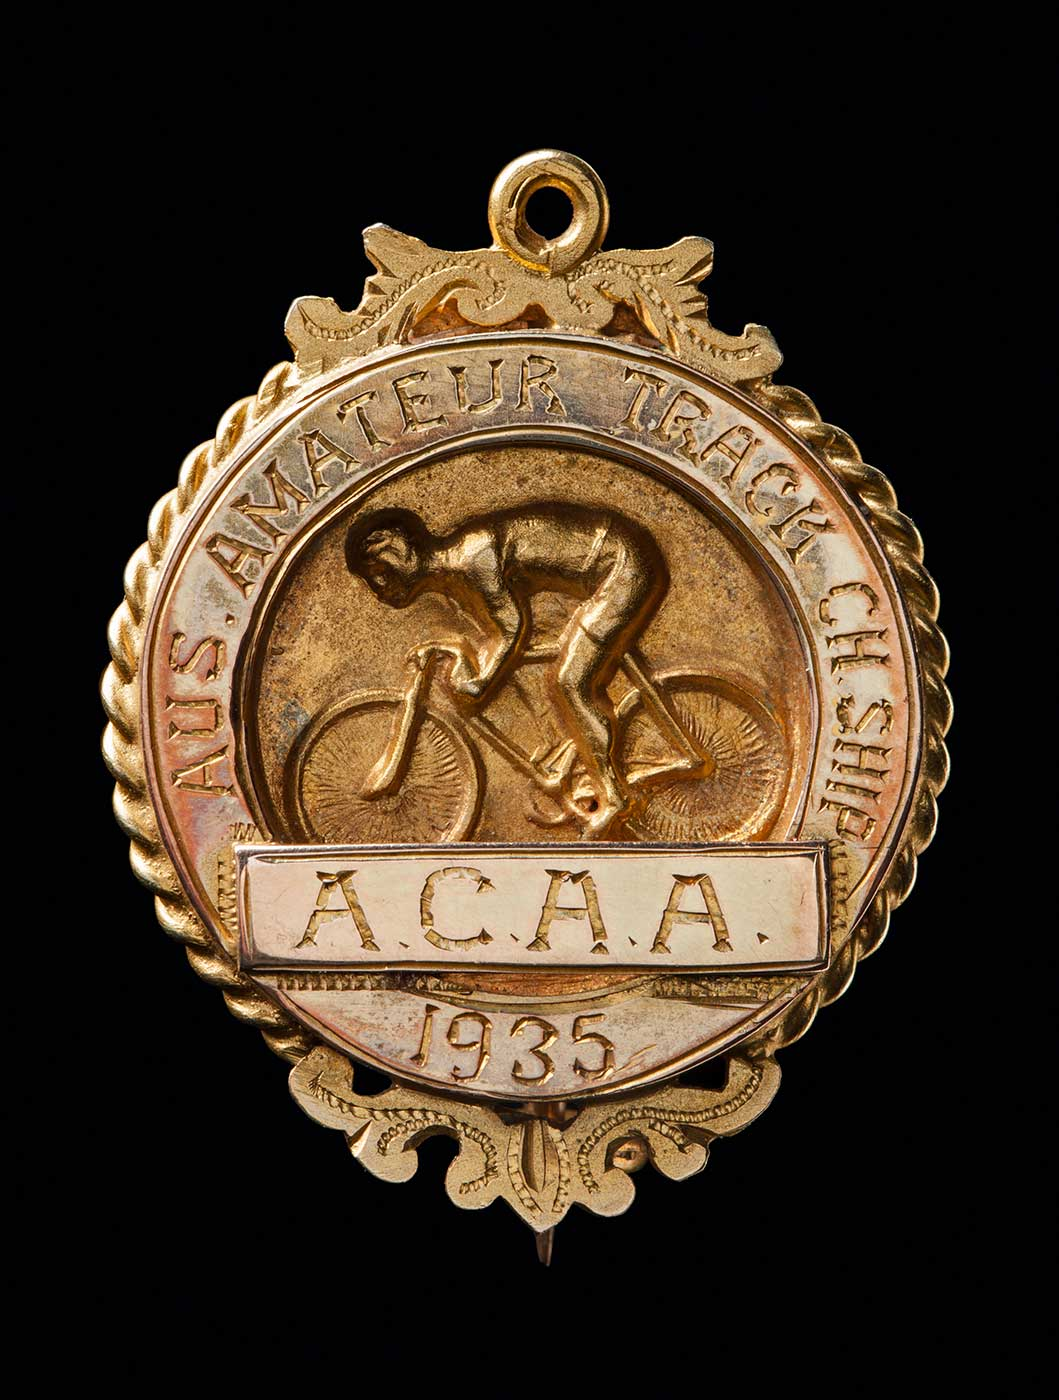 A circular gold-plated medal with a pin clasp. The medal is decorated on the front with a raised relief of a cyclist with inscriptions that read 'AUS AMATEUR TRACK CH.SHIP / ACAA / 1935'. Also inscribed on the reverse side of the medal is '10MILE / CH. / R. GOODWIN / 2ND'. - click to view larger image